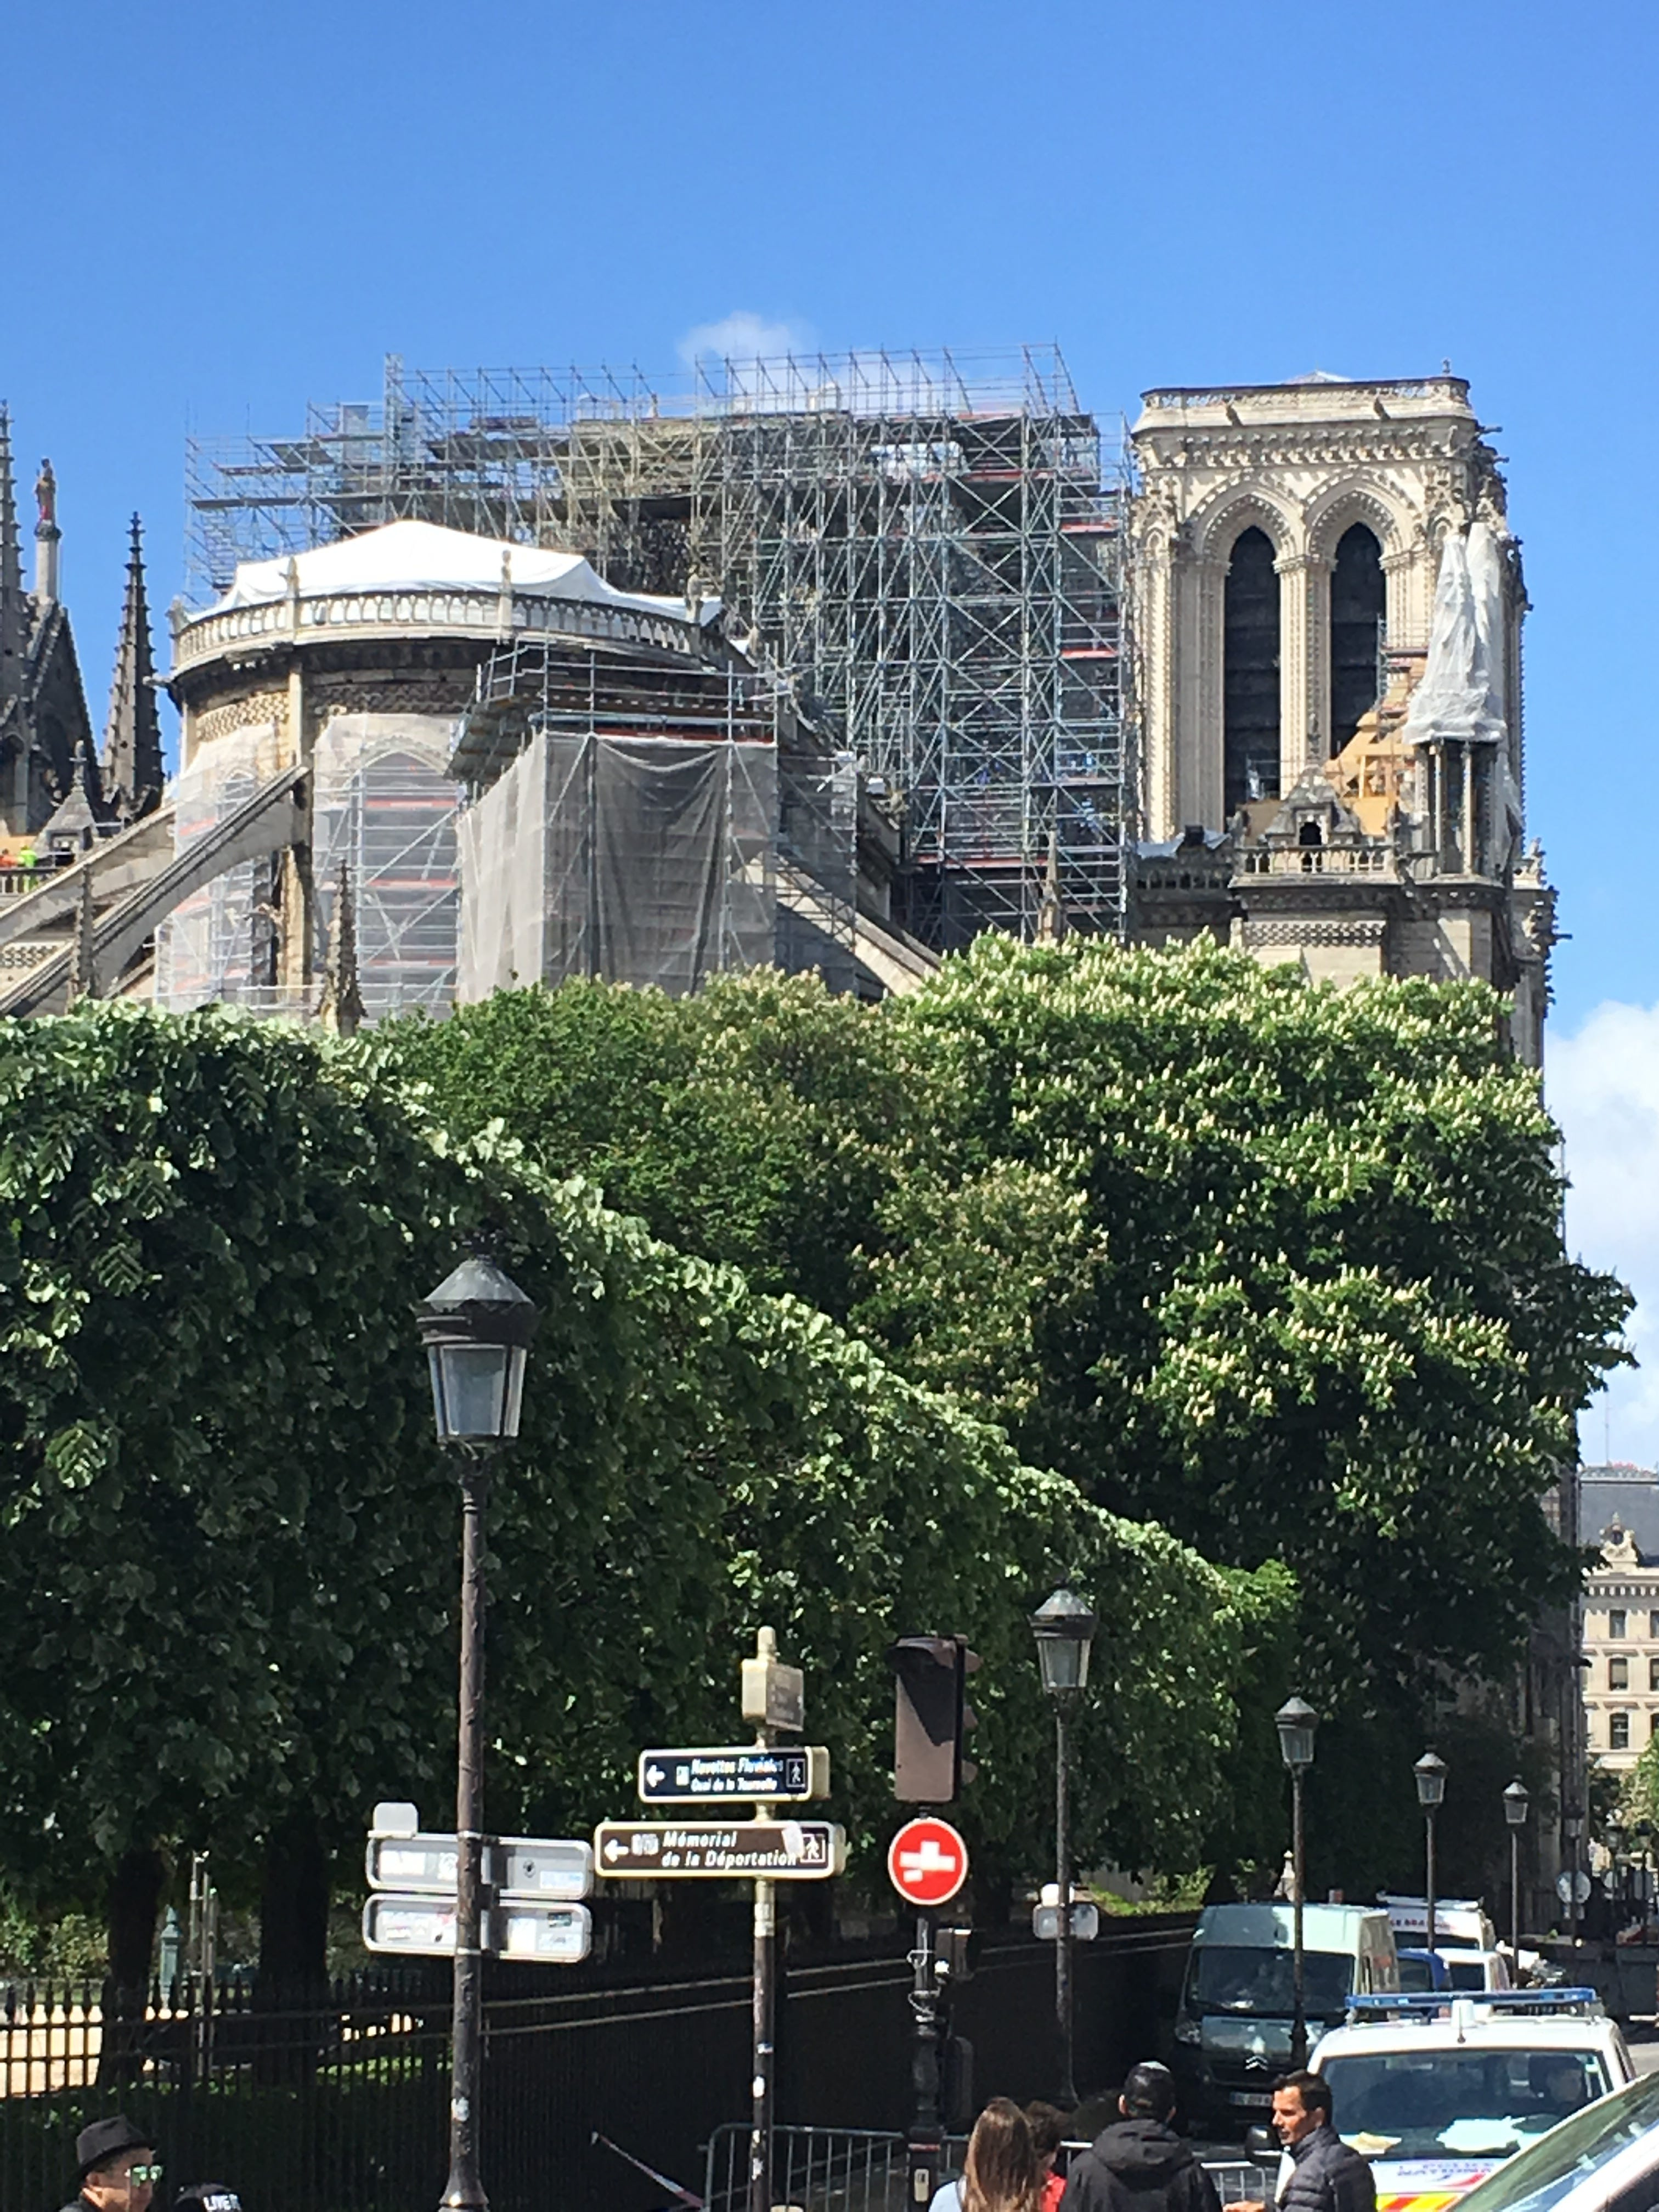 Exploring Paris while Notre Dame is out of commission: Other must-see spots to check out